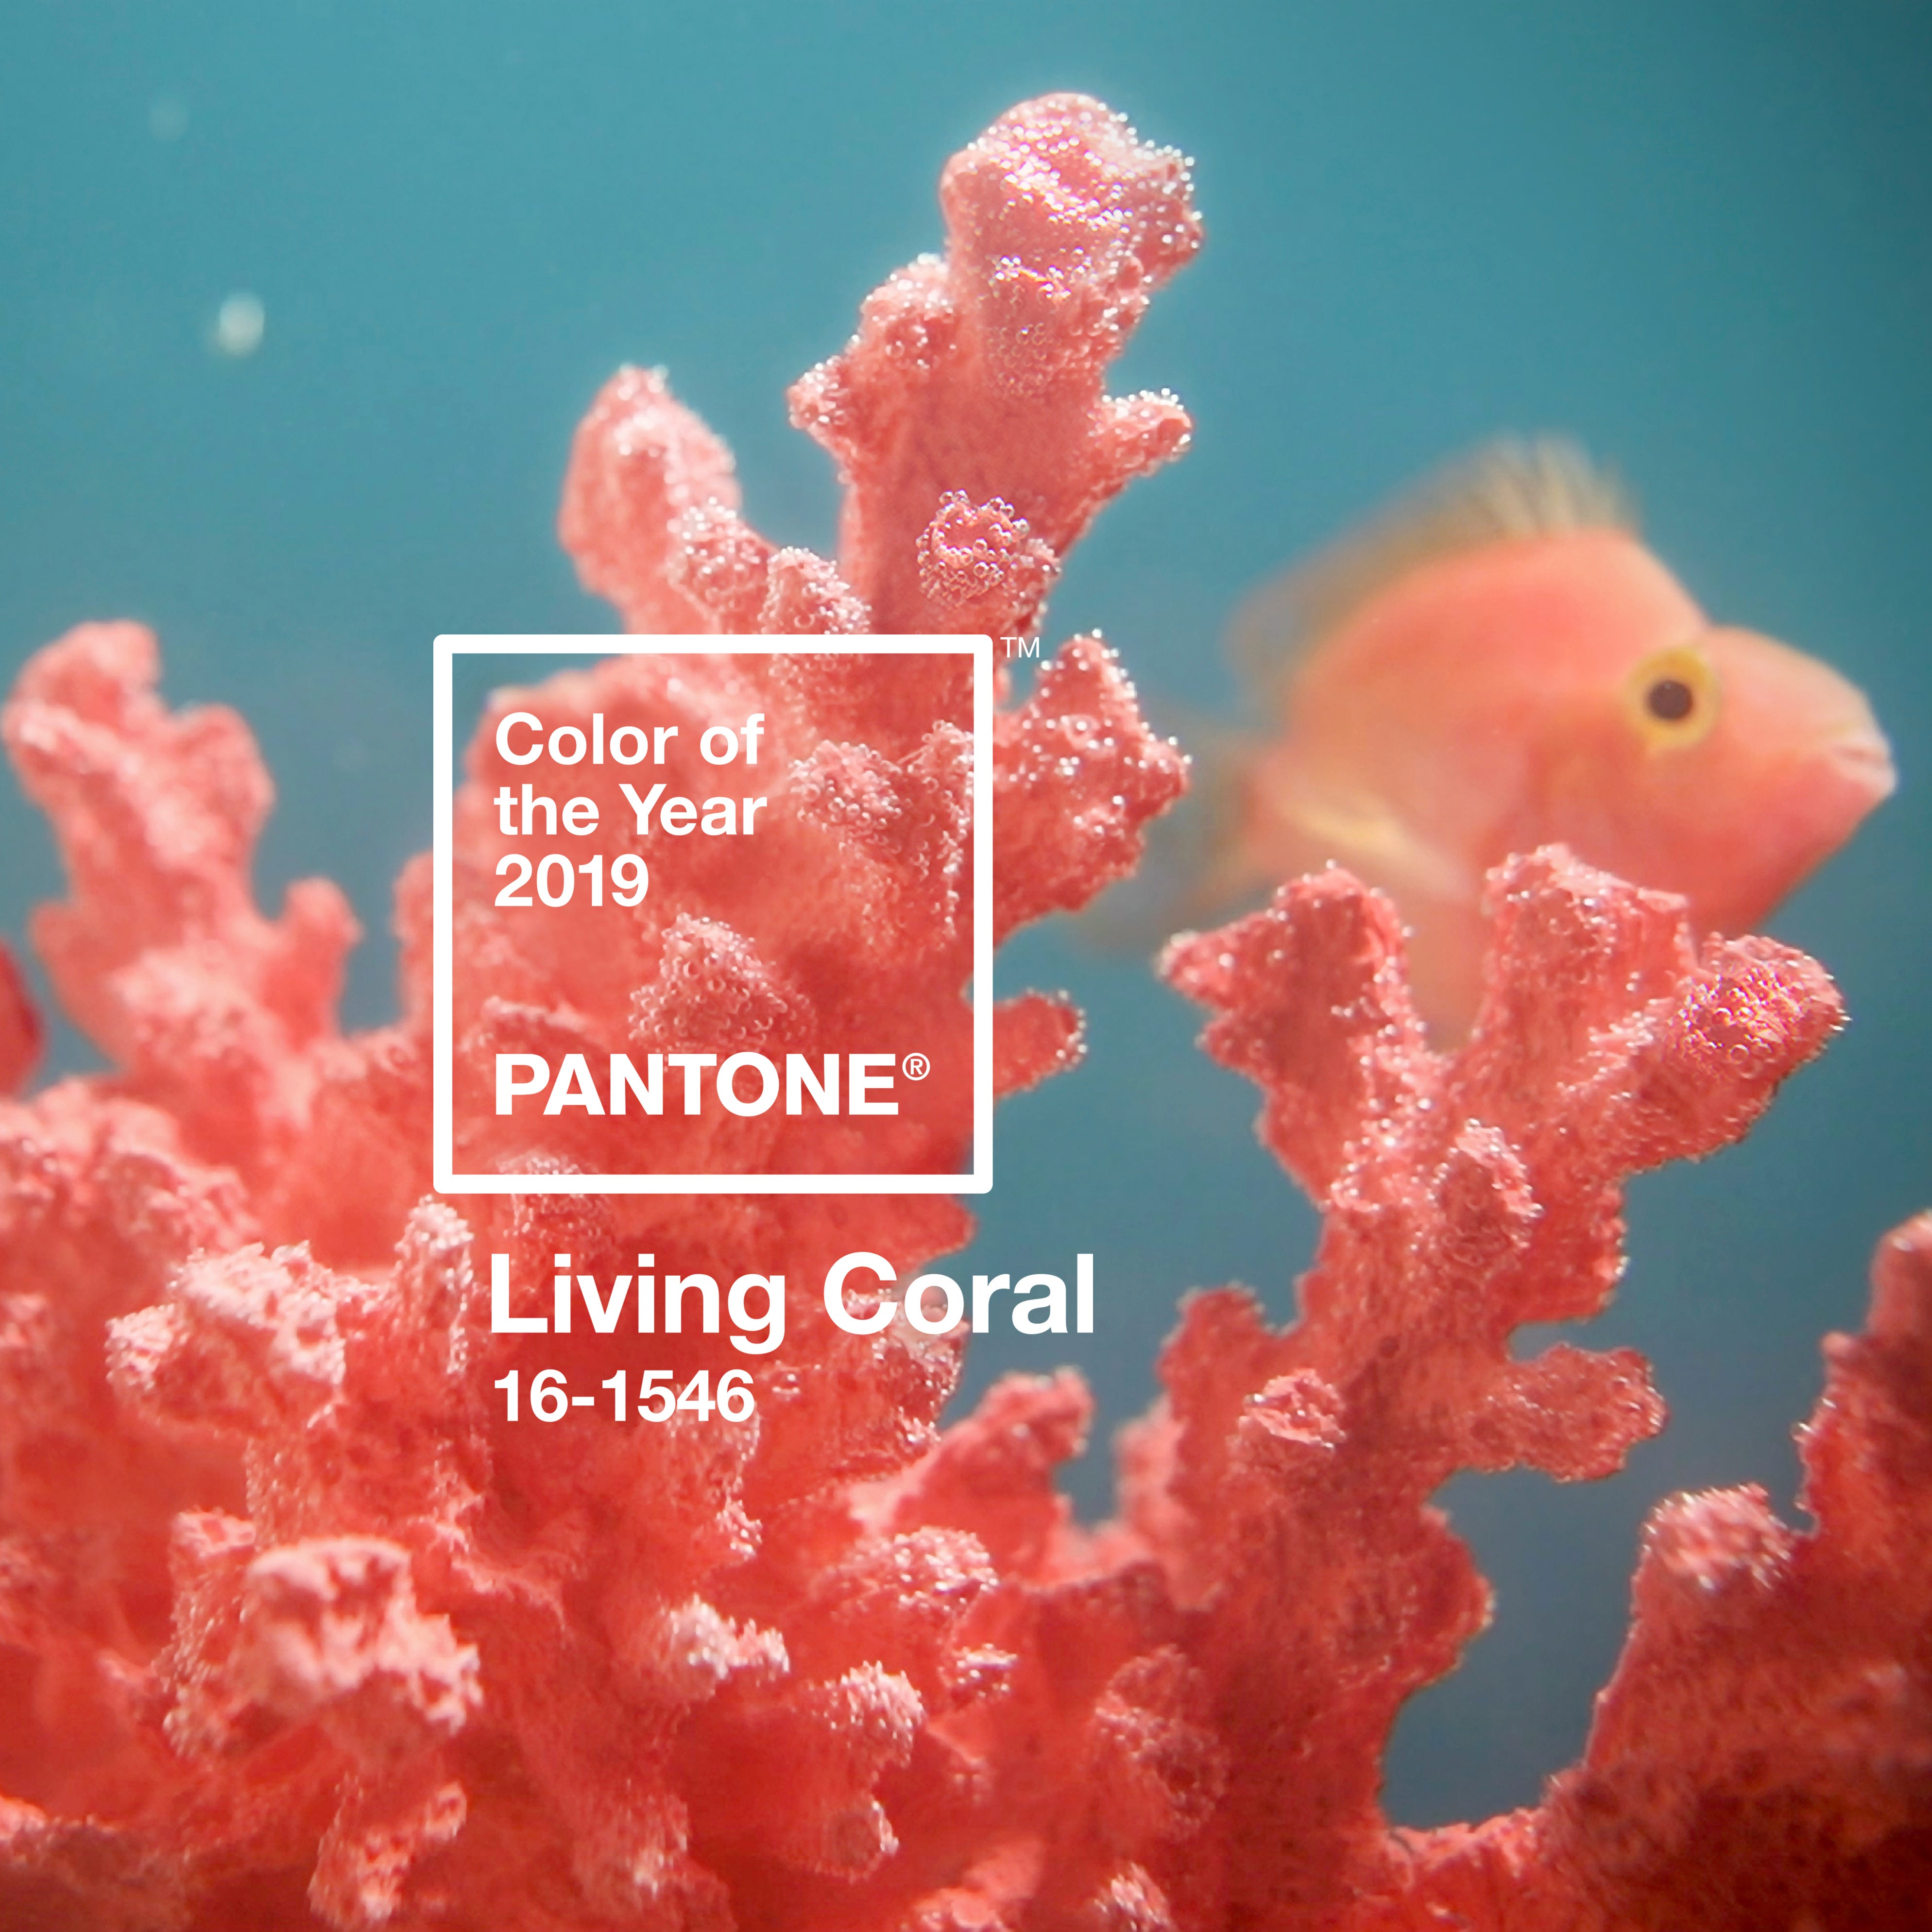 Pantone's 'life-affirming' color of the year the same shade as rapidly dying coral reefs